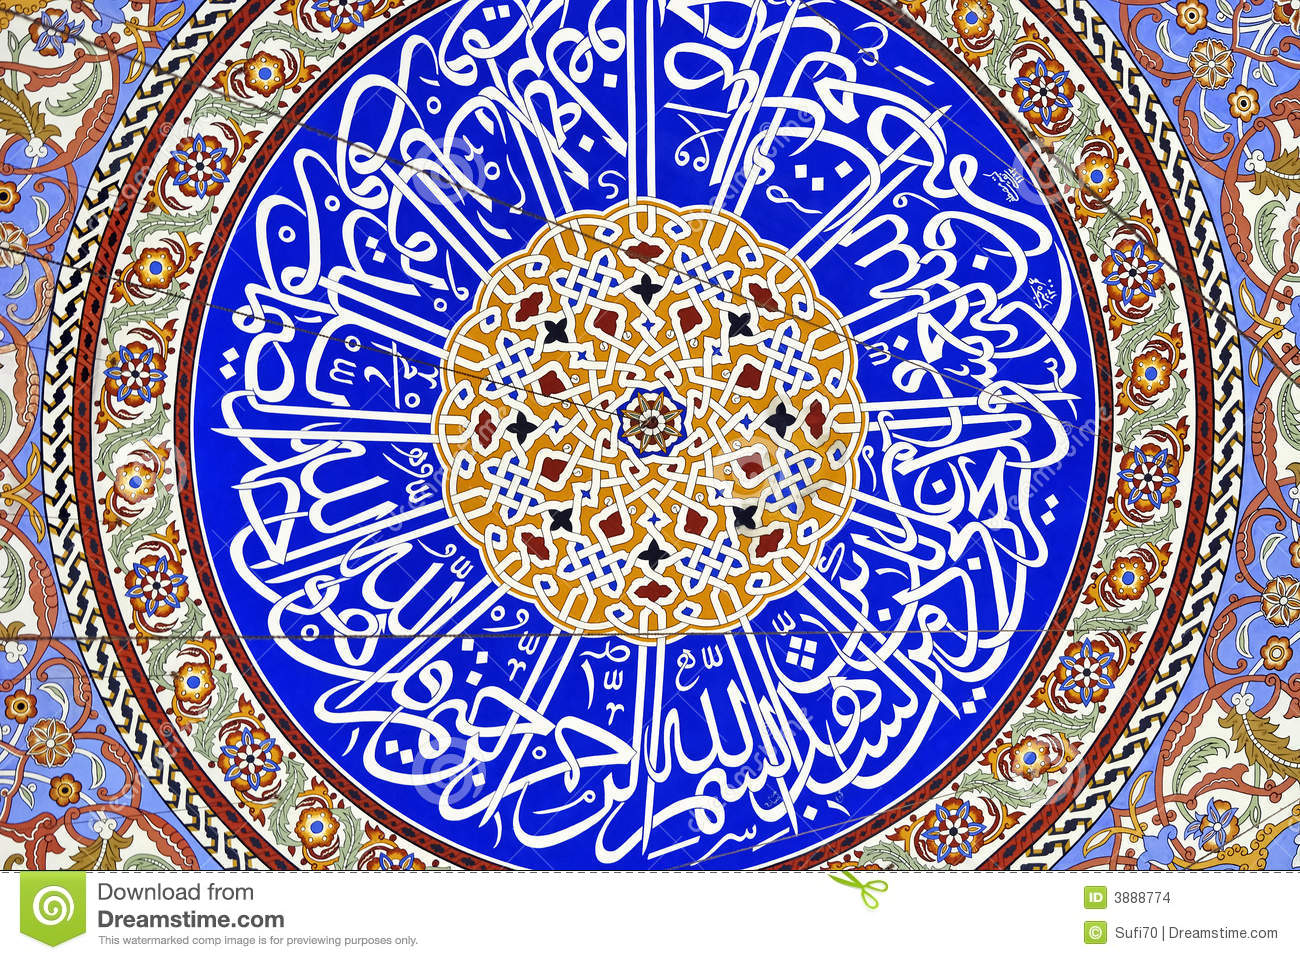 Arabic Calligraphy In Mosque Stock Images - Image: 3888774